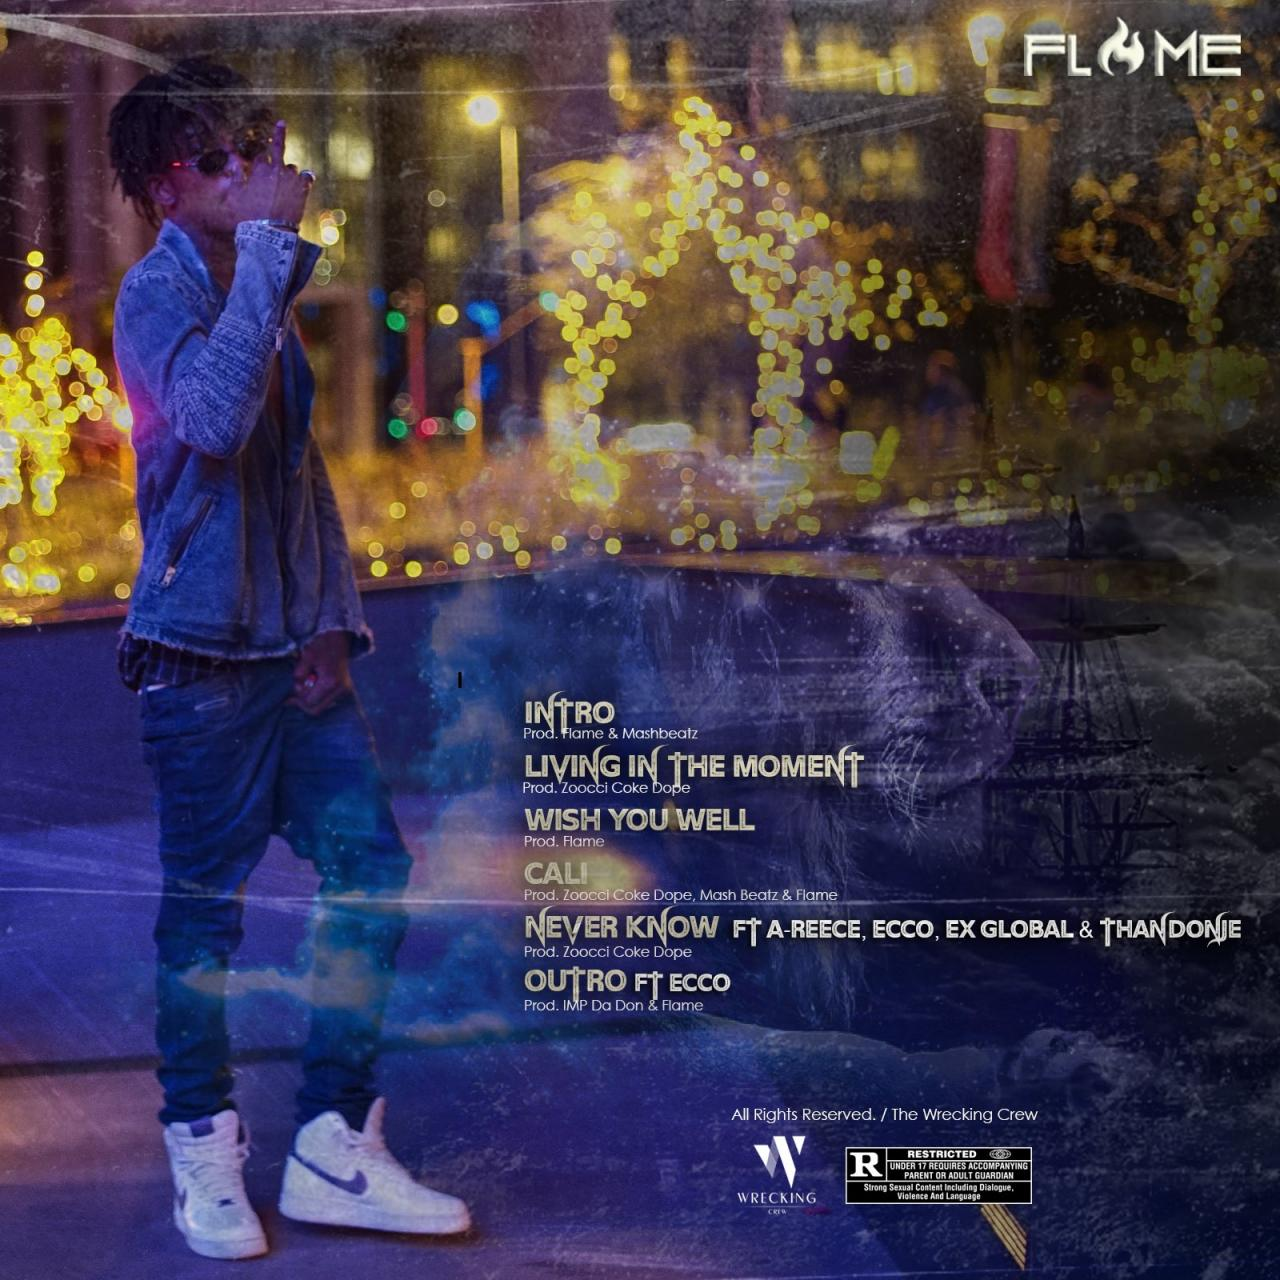 Flame – Living in The Moment